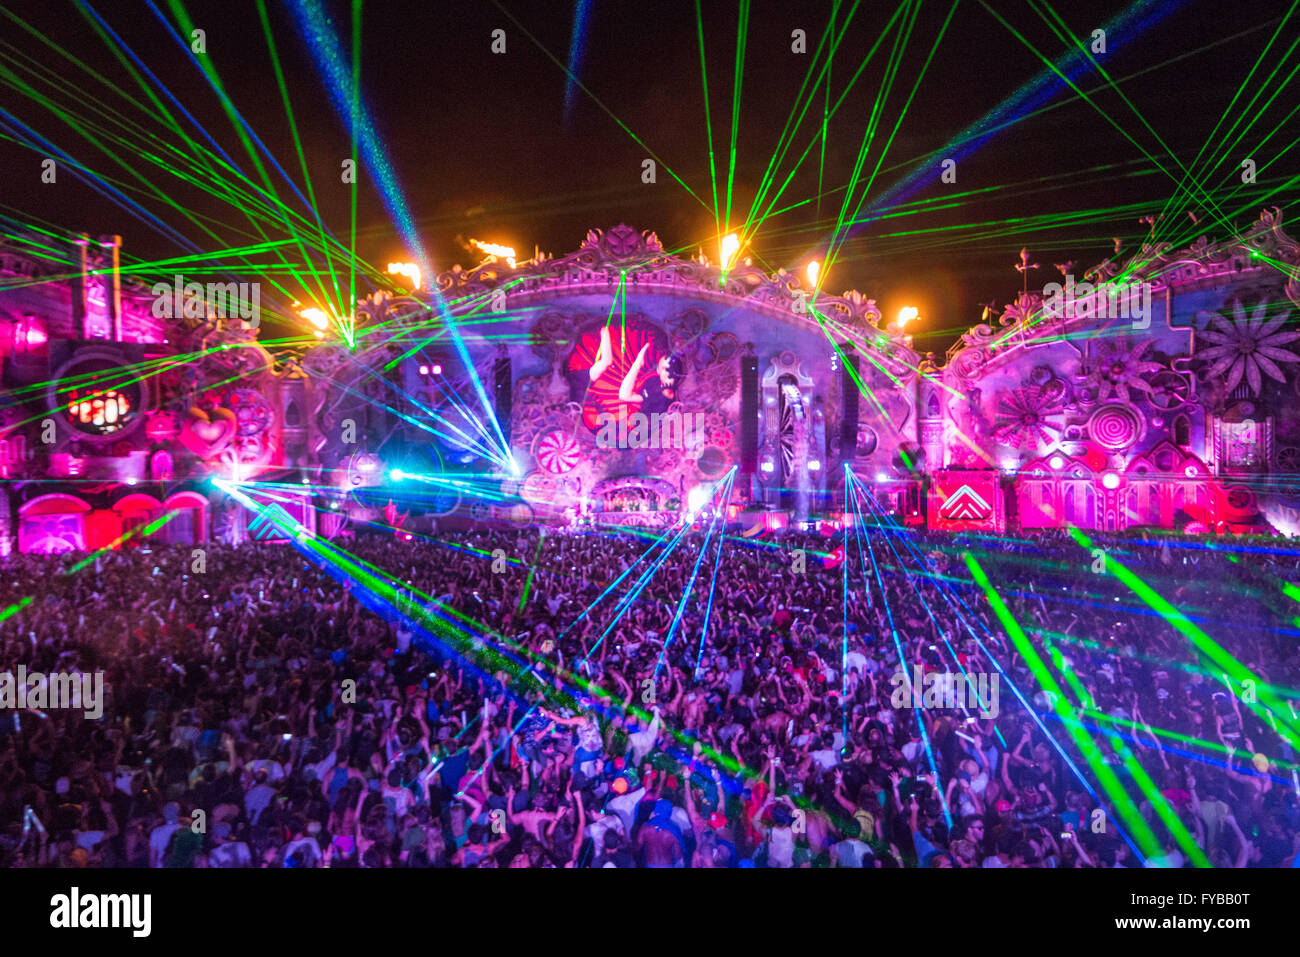 ITU, SP - 22/04/2016: TOMORROWLAND BRAZIL 2016 - 2nd edition of Tomorrowland Brazil in 2016, the international electronic - Stock Image